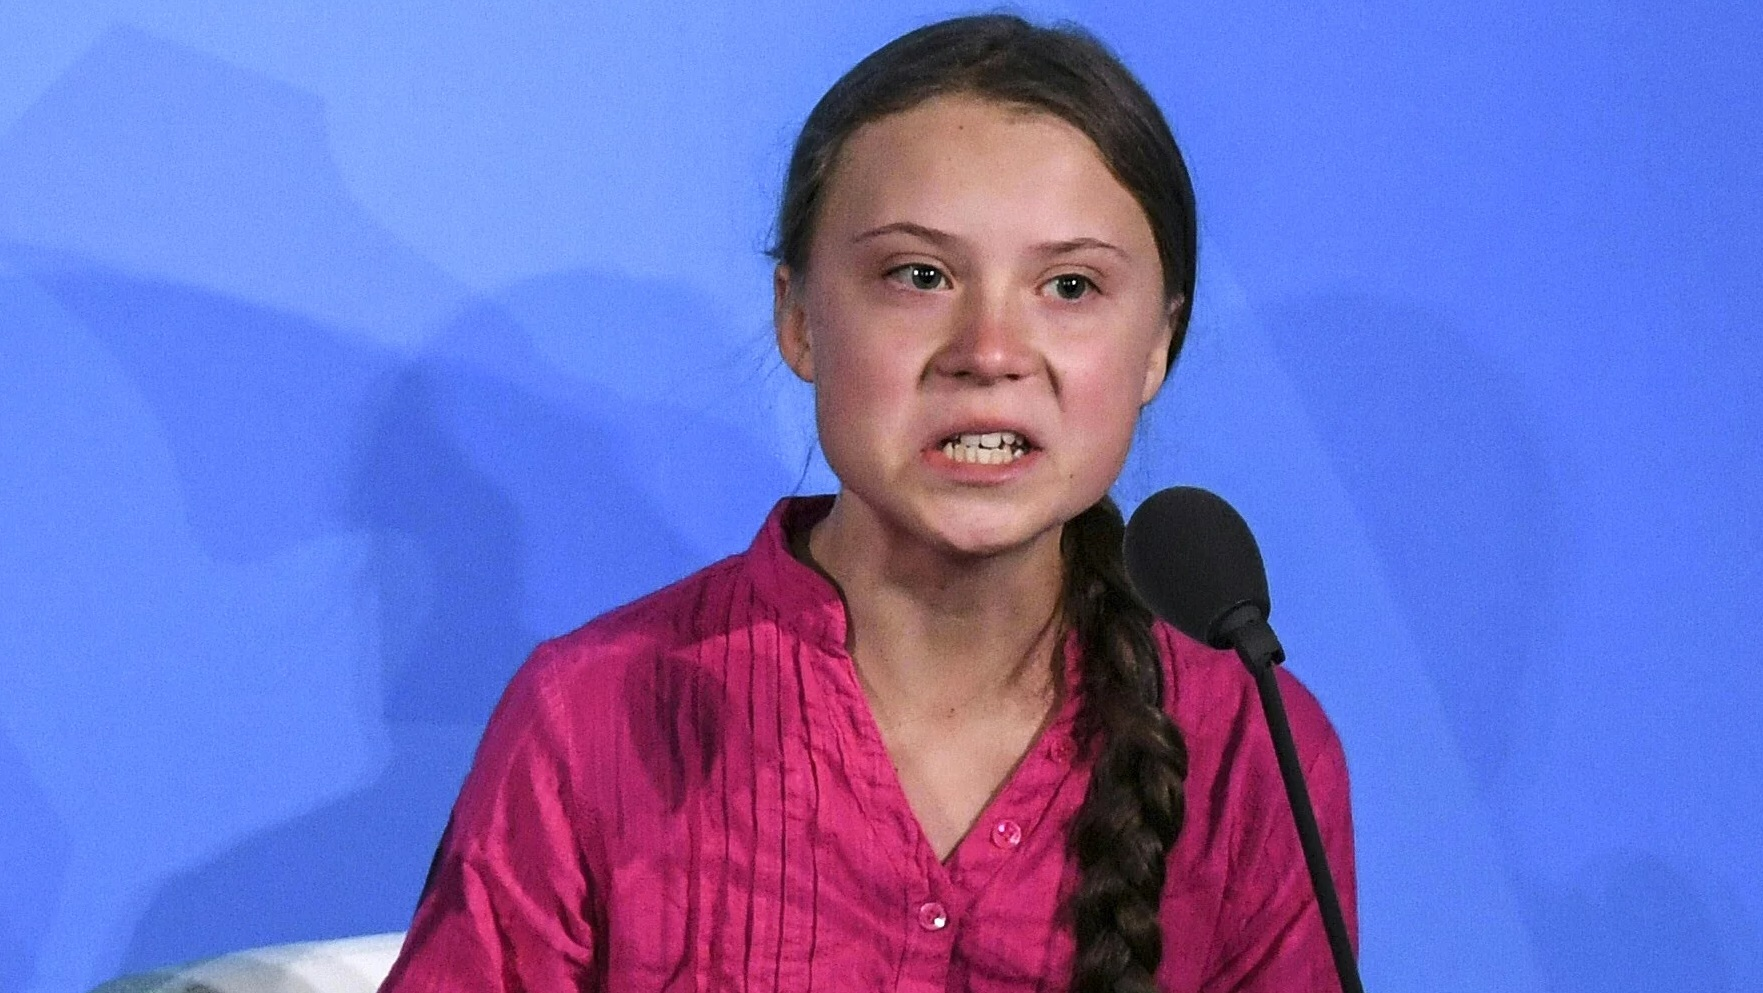 Image: Manufactured climate hysteria of Greta Thunberg a repeat of what Severn Cullis-Suzuki did back in 1992